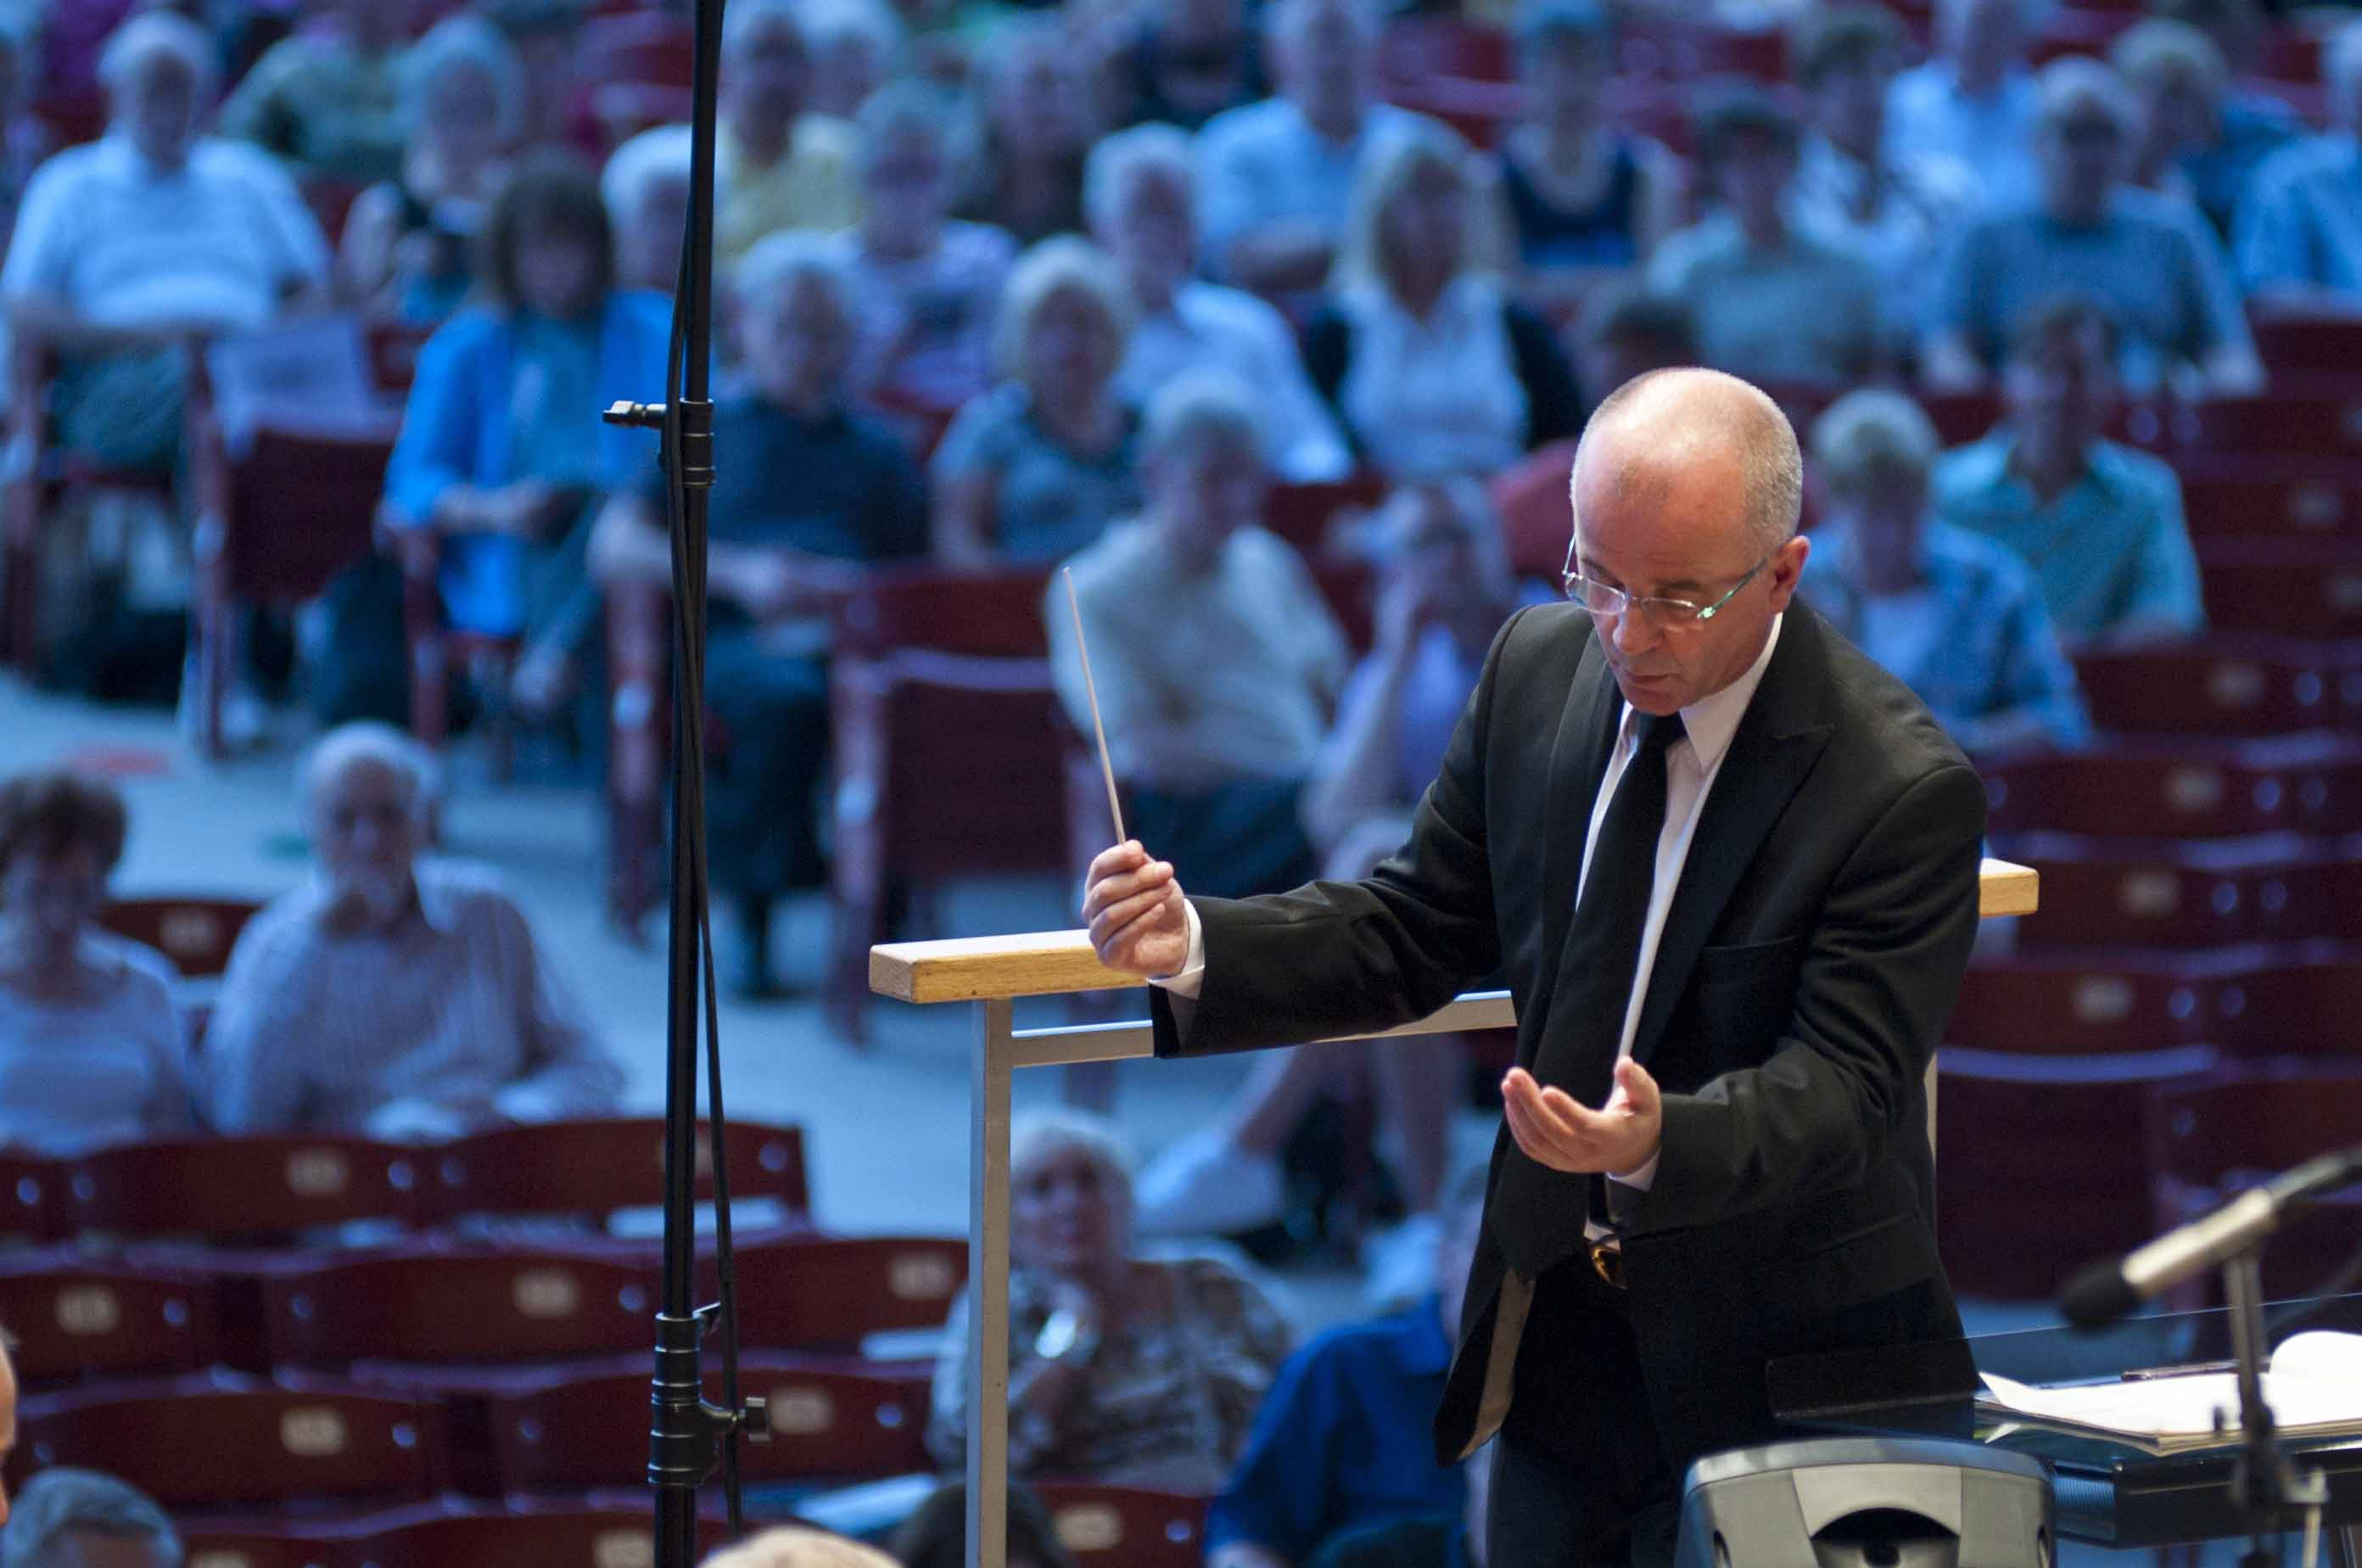 GRANT PARK MUSIC FESTIVAL OPENS 2015 SEASON WITH BEETHOVEN'S SYMPHONY NO. 7  Wednesday, June 17 in Millennium Park 1  Christopher Bell Conducting (photo credit Patrick Pyszka)